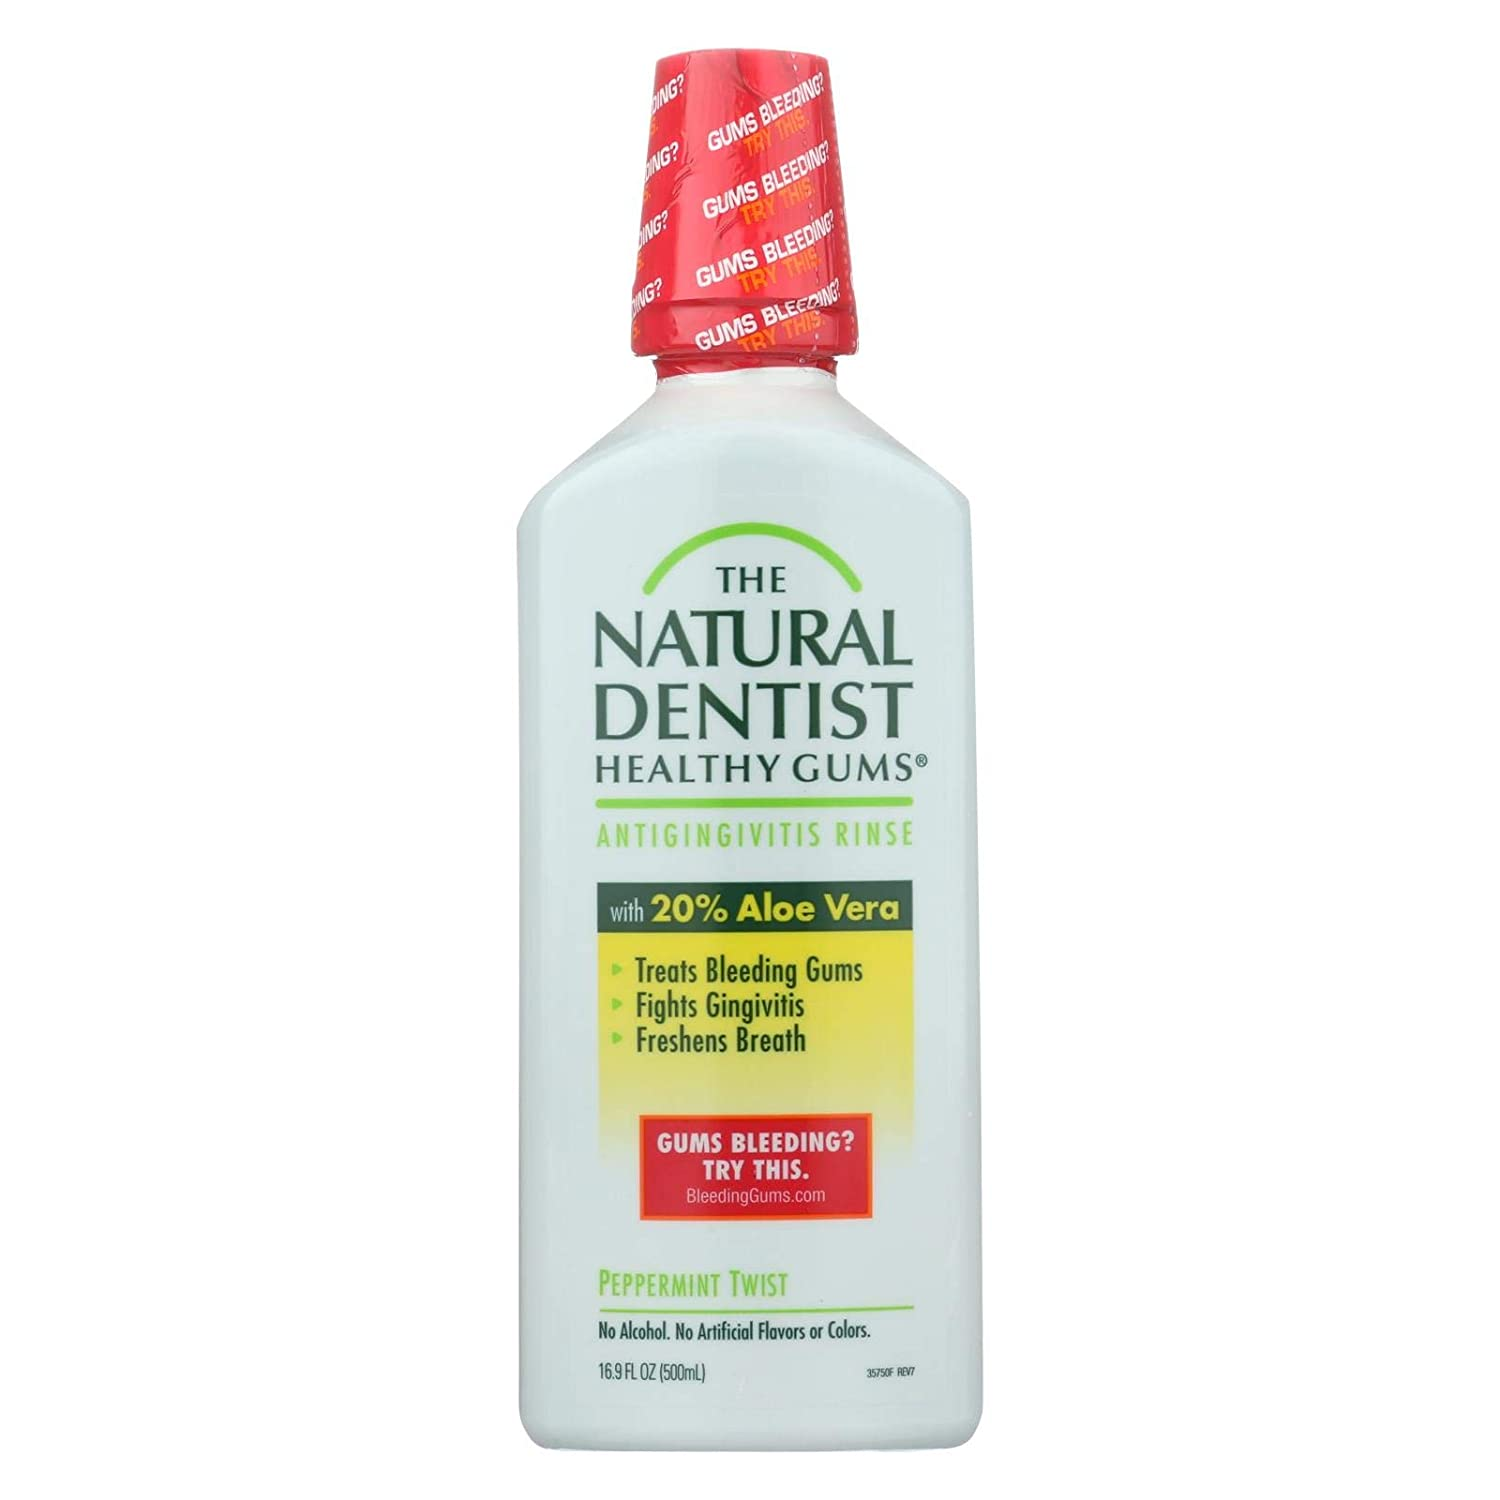 2 Pack of The Natural Dentist Healthy Gums Antigingivitis Mouthwash to Prevent and Treat Bleeding Gums and Fight the Gum Disease Gingivitis - Peppermint Twist flavor, 16.9 oz.